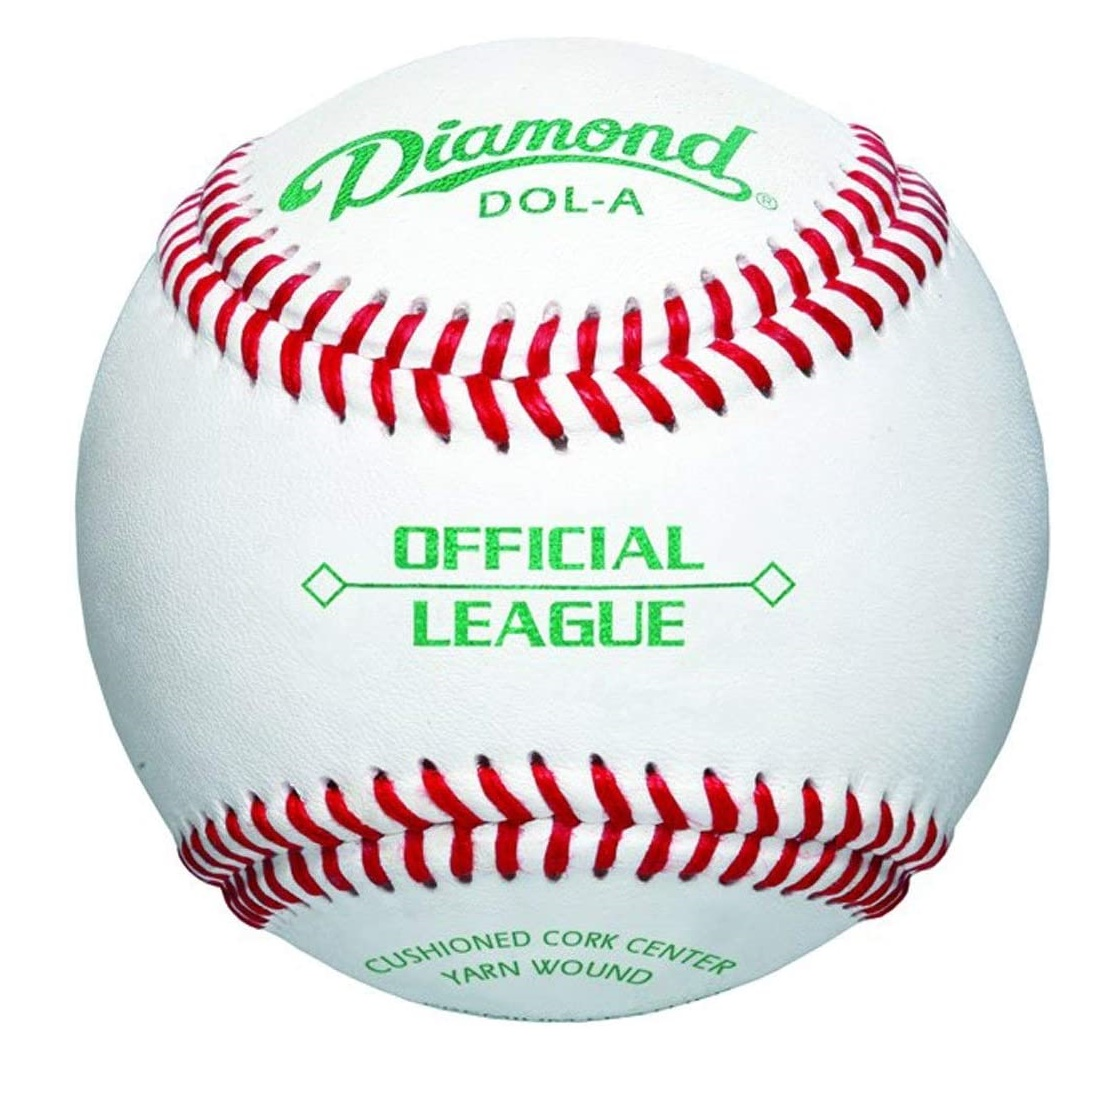 diamond-dol-a-official-league-leather-baseballs-1-dozen DOL-A-OL   <span>Diamond DOL-A Official Leaguel leather baseballs features durable full-grain leather cover